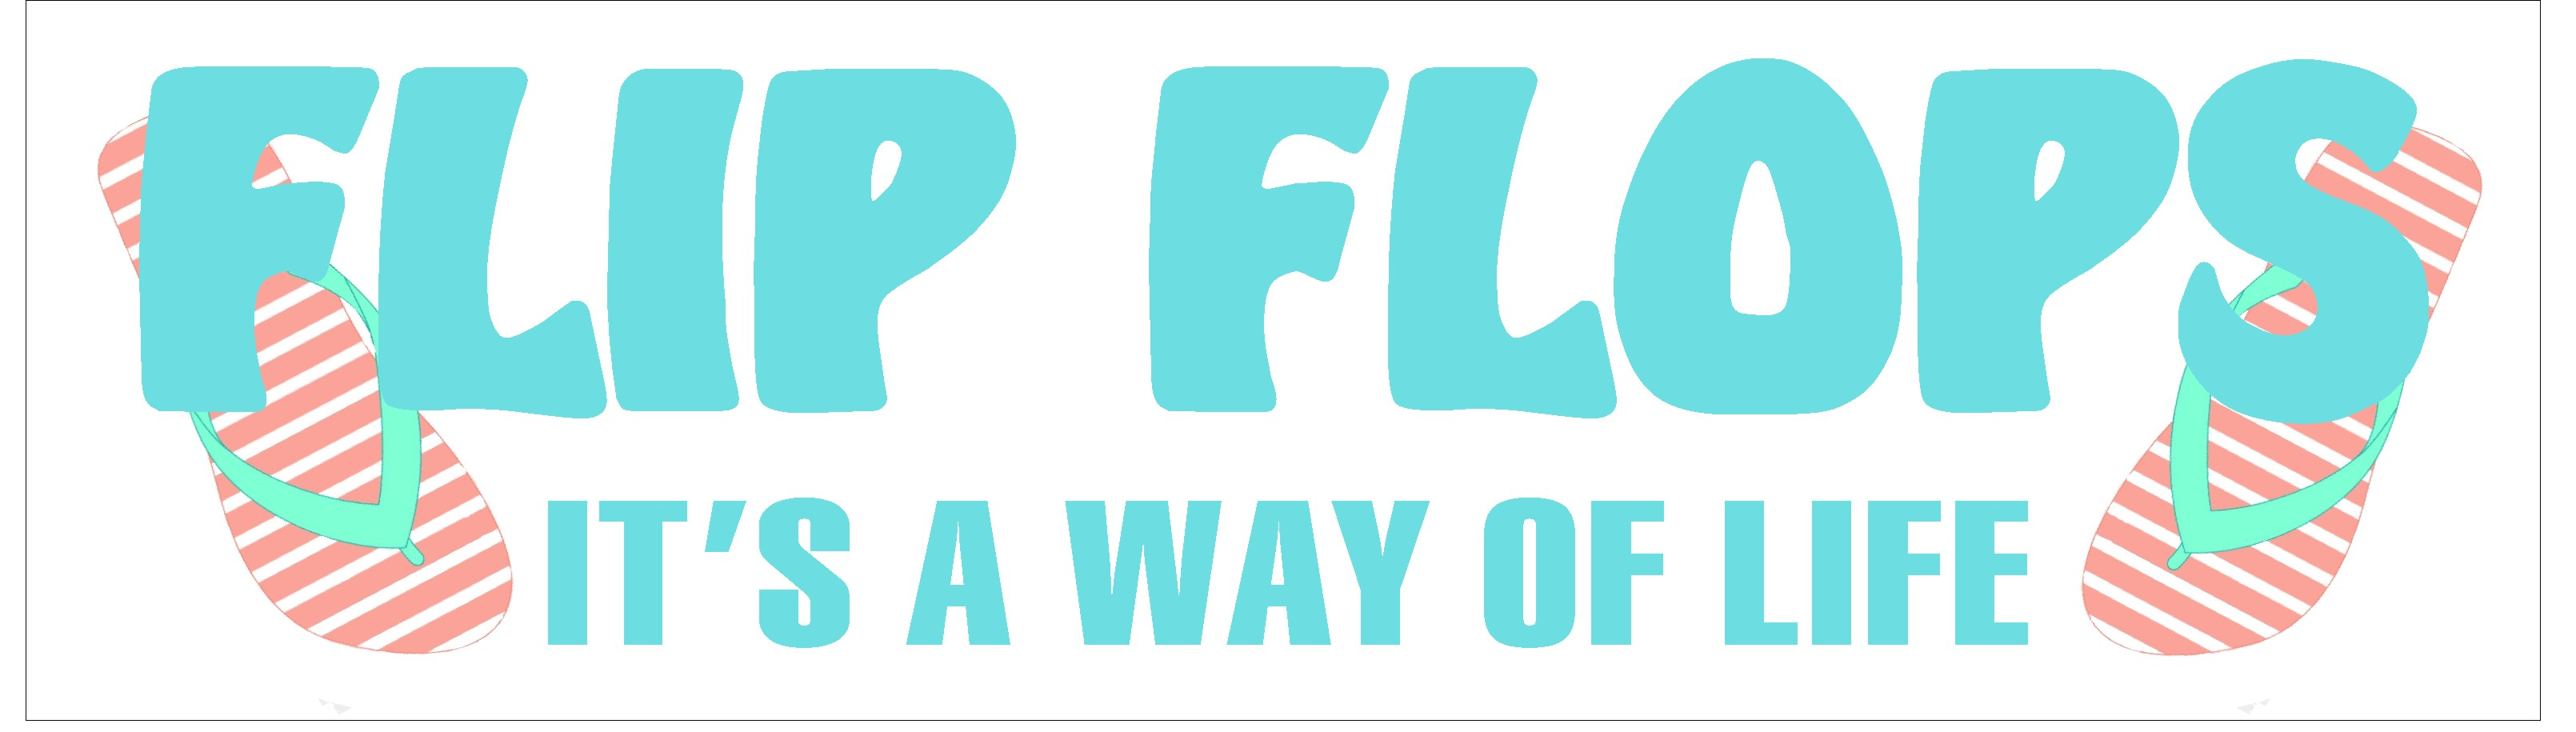 "FLIP FLOPS IT'S A WAY OF LIFE 10.5"" X 3"" WOODEN BLOCK SIGN"